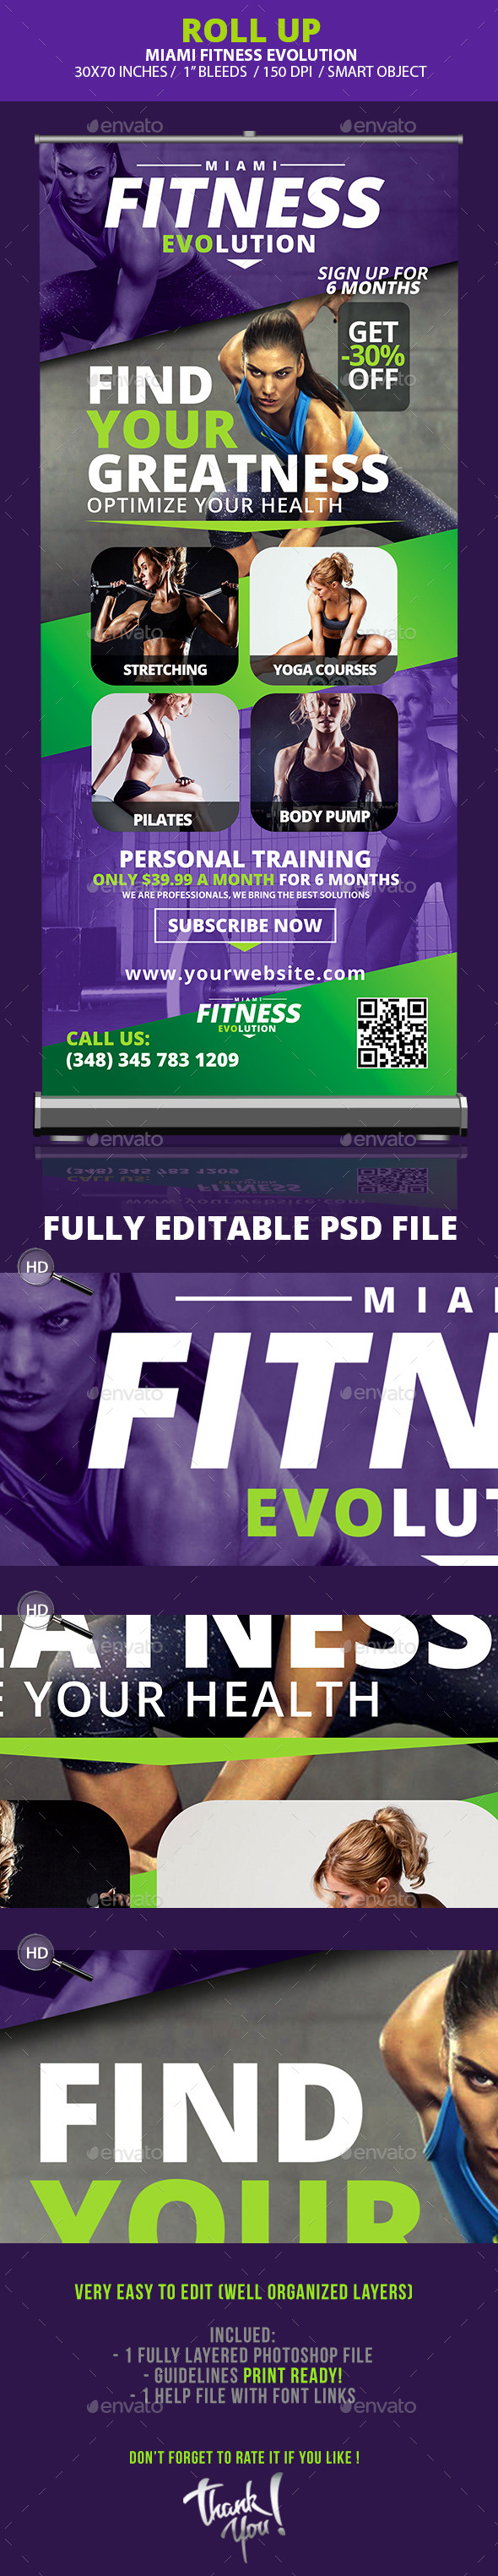 GraphicRiver Fitness Evolution Roll-up Banners 10359541